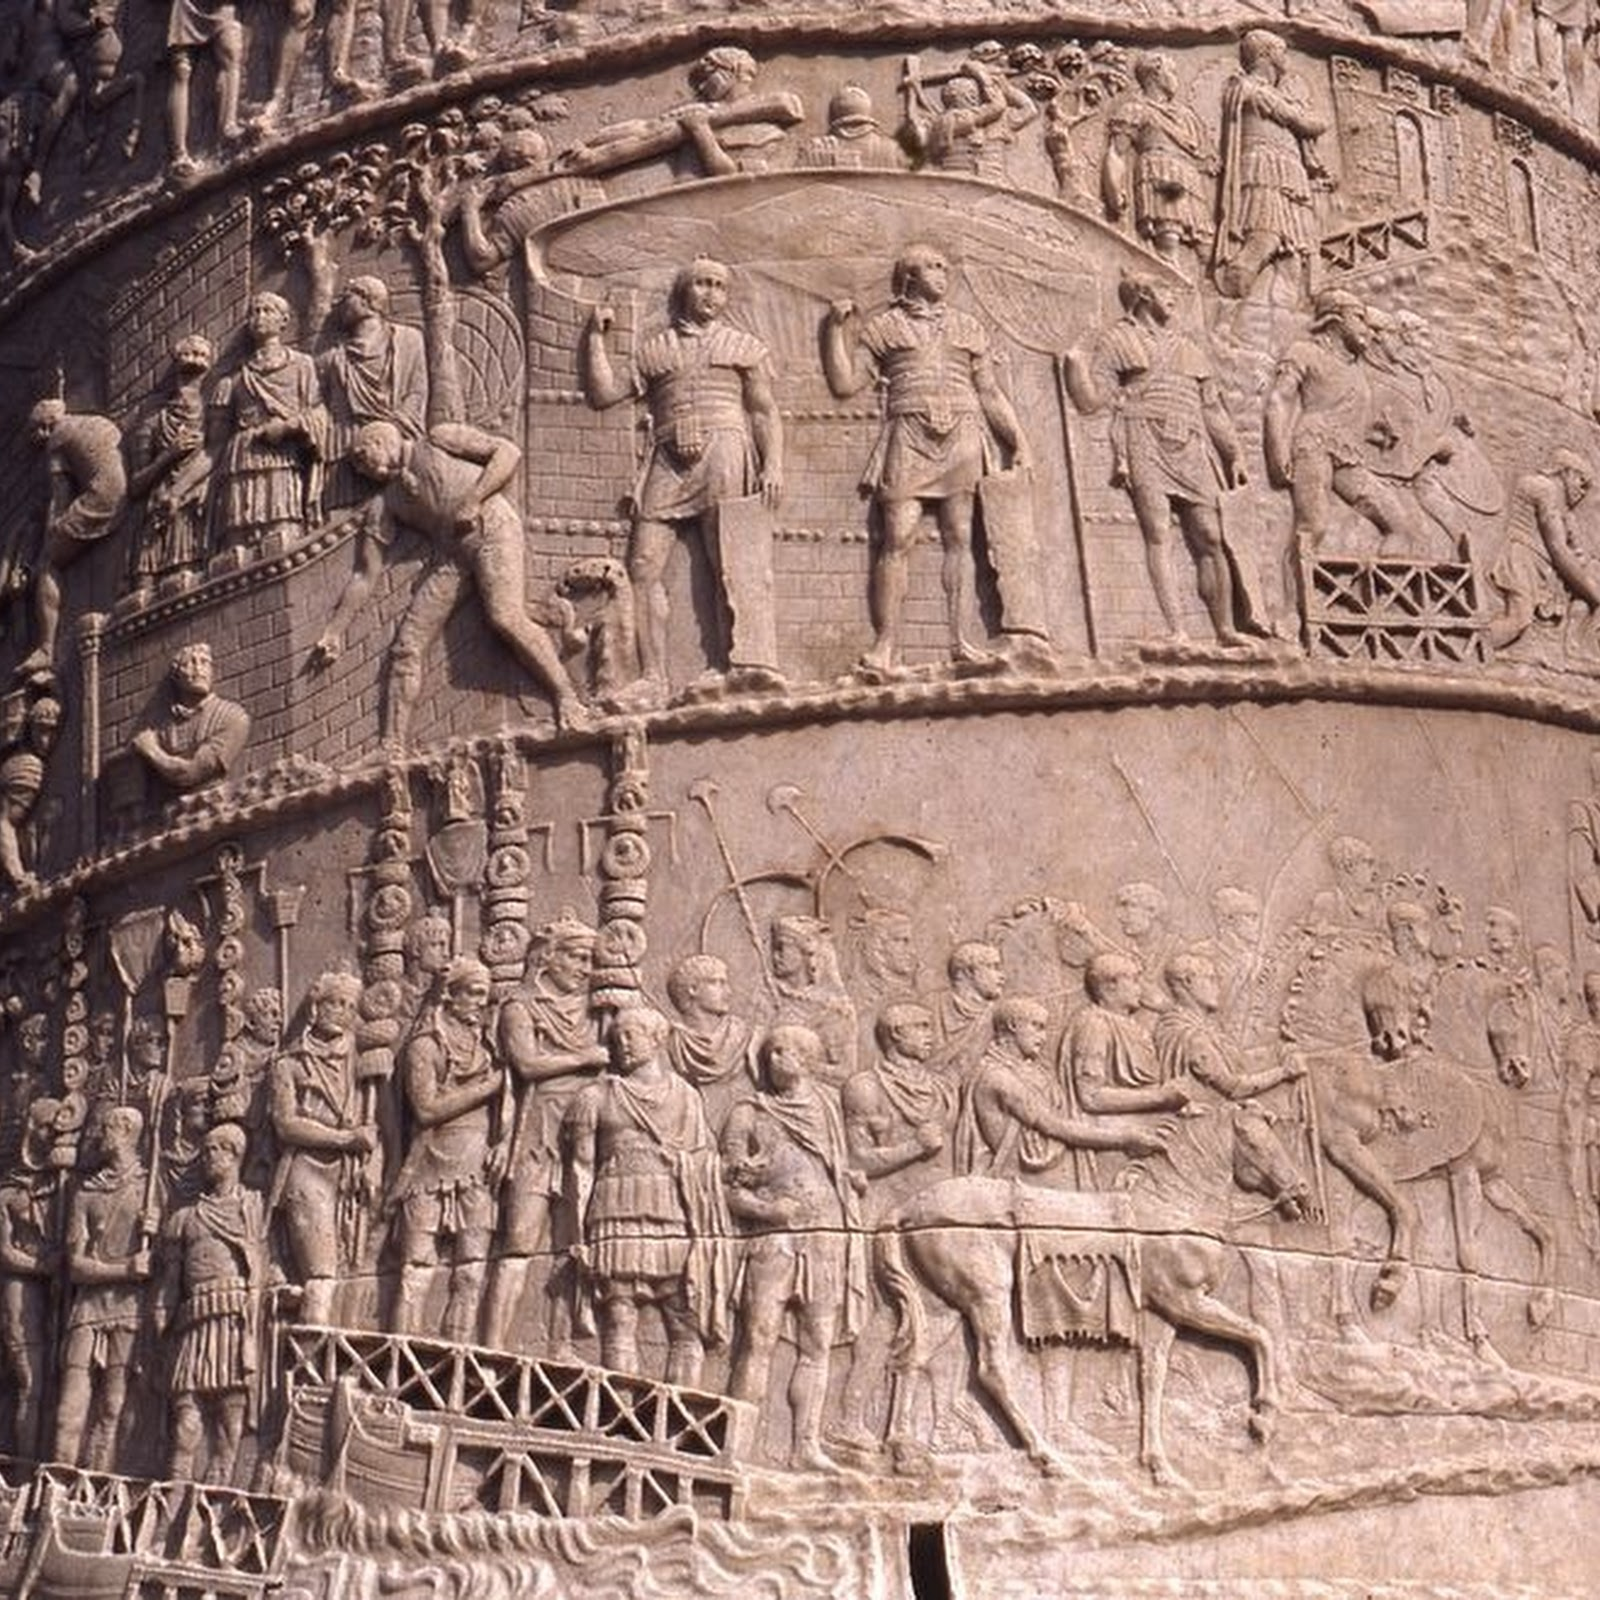 Trajan's Column: An Emperor's War Diary Carved in Stone